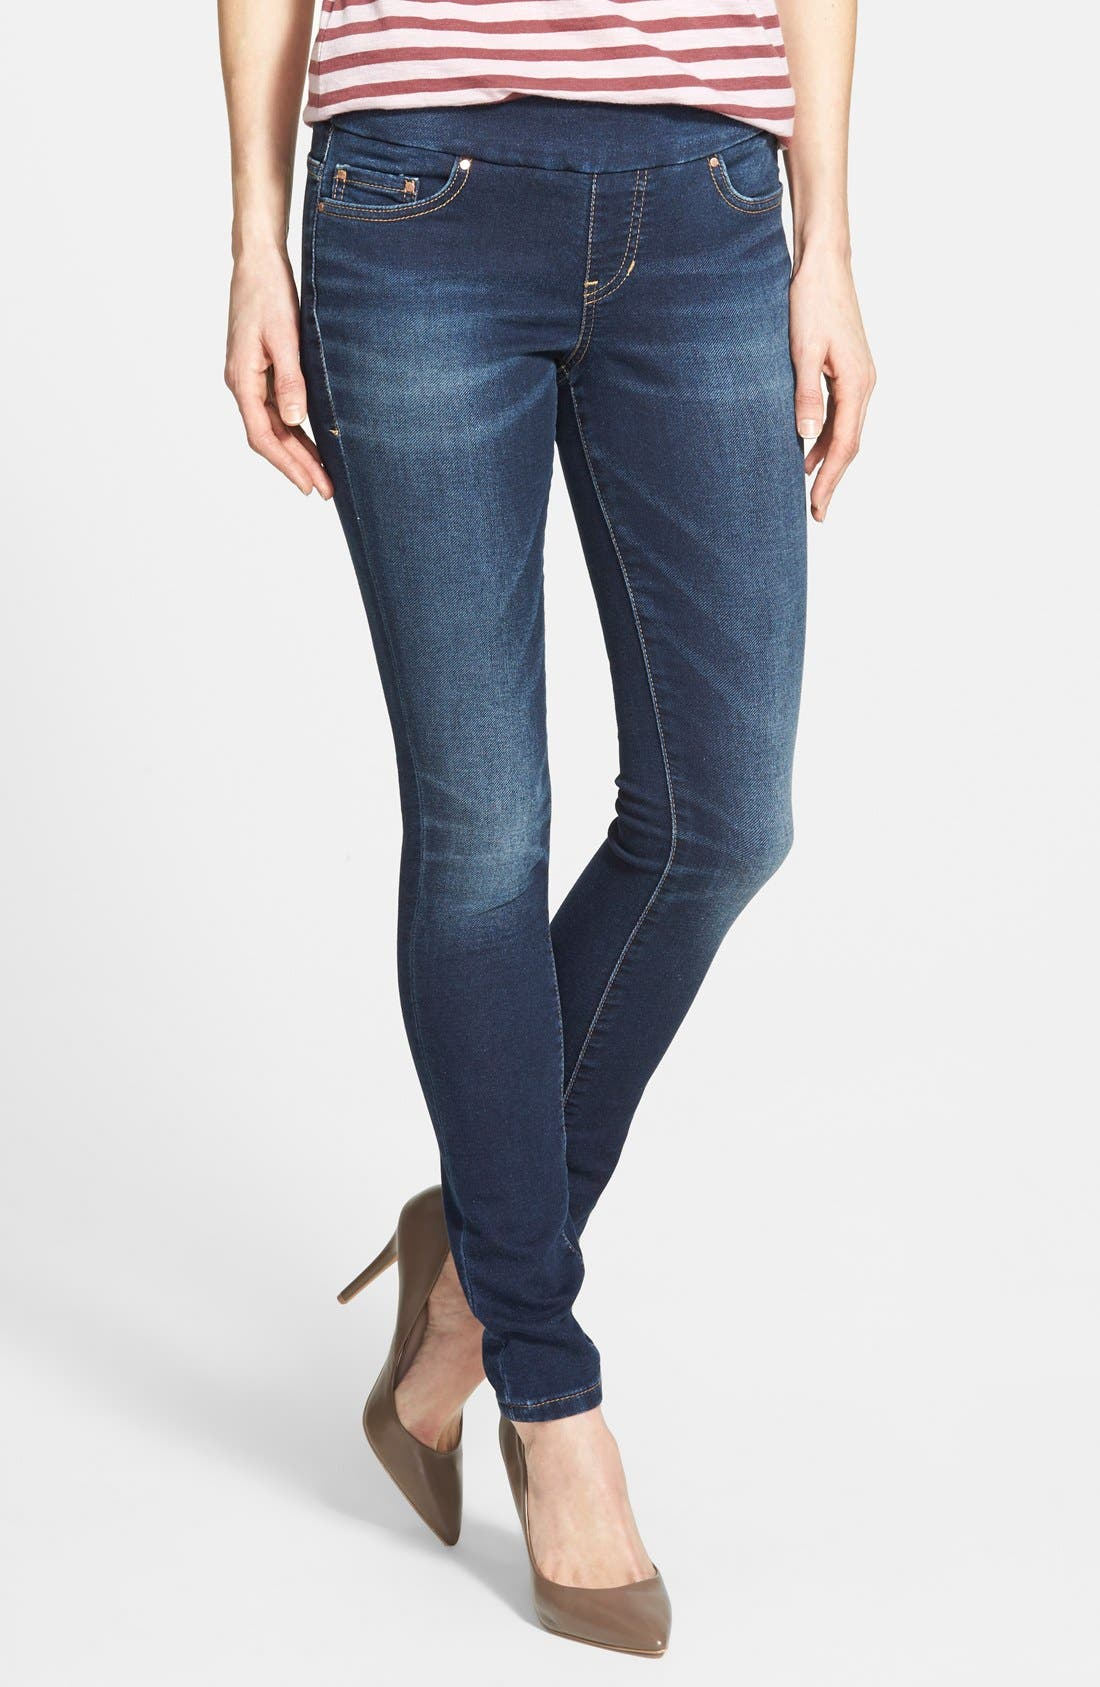 'Nora' Pull-On Stretch Knit Skinny Jeans,                         Main,                         color, Blue Ridge